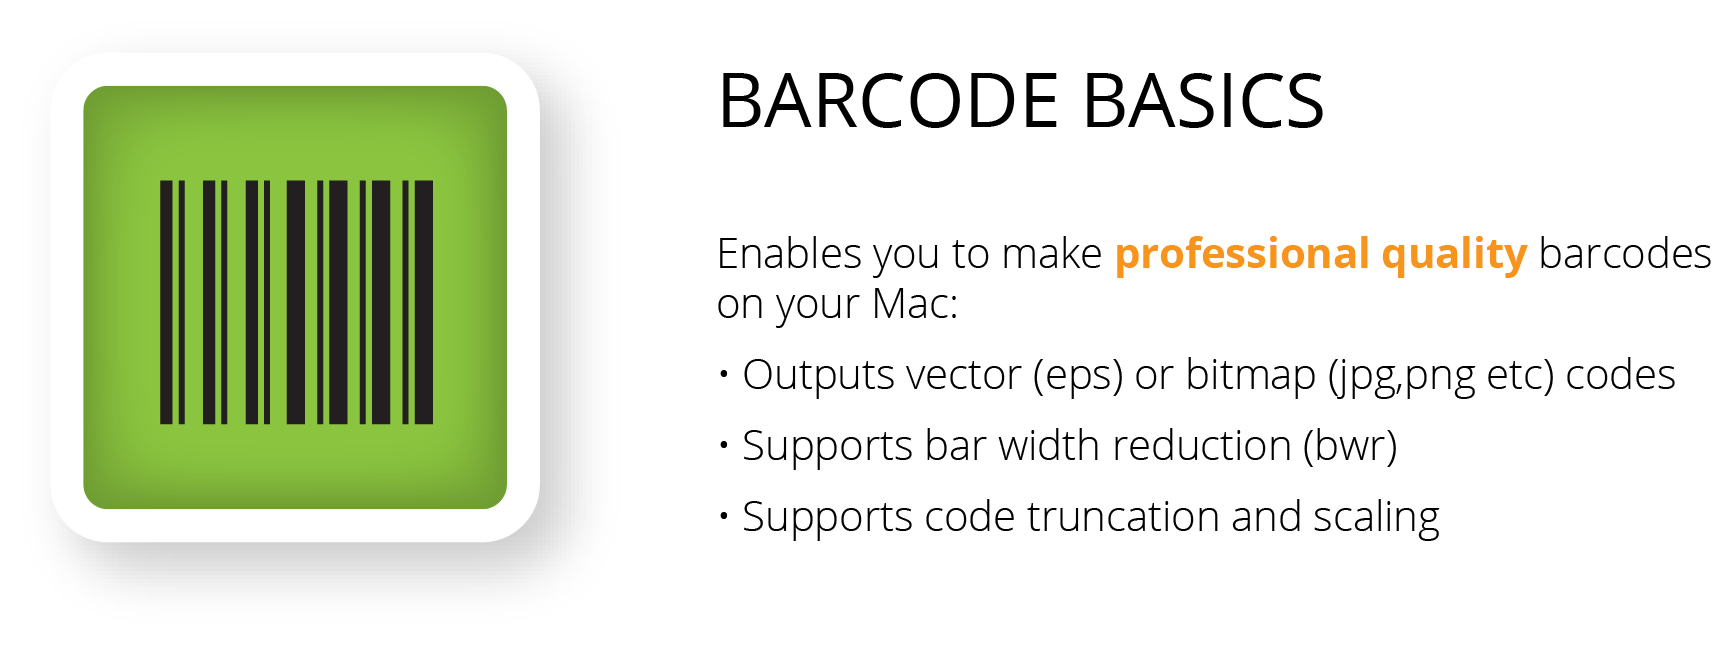 Pro quality mac barcode software